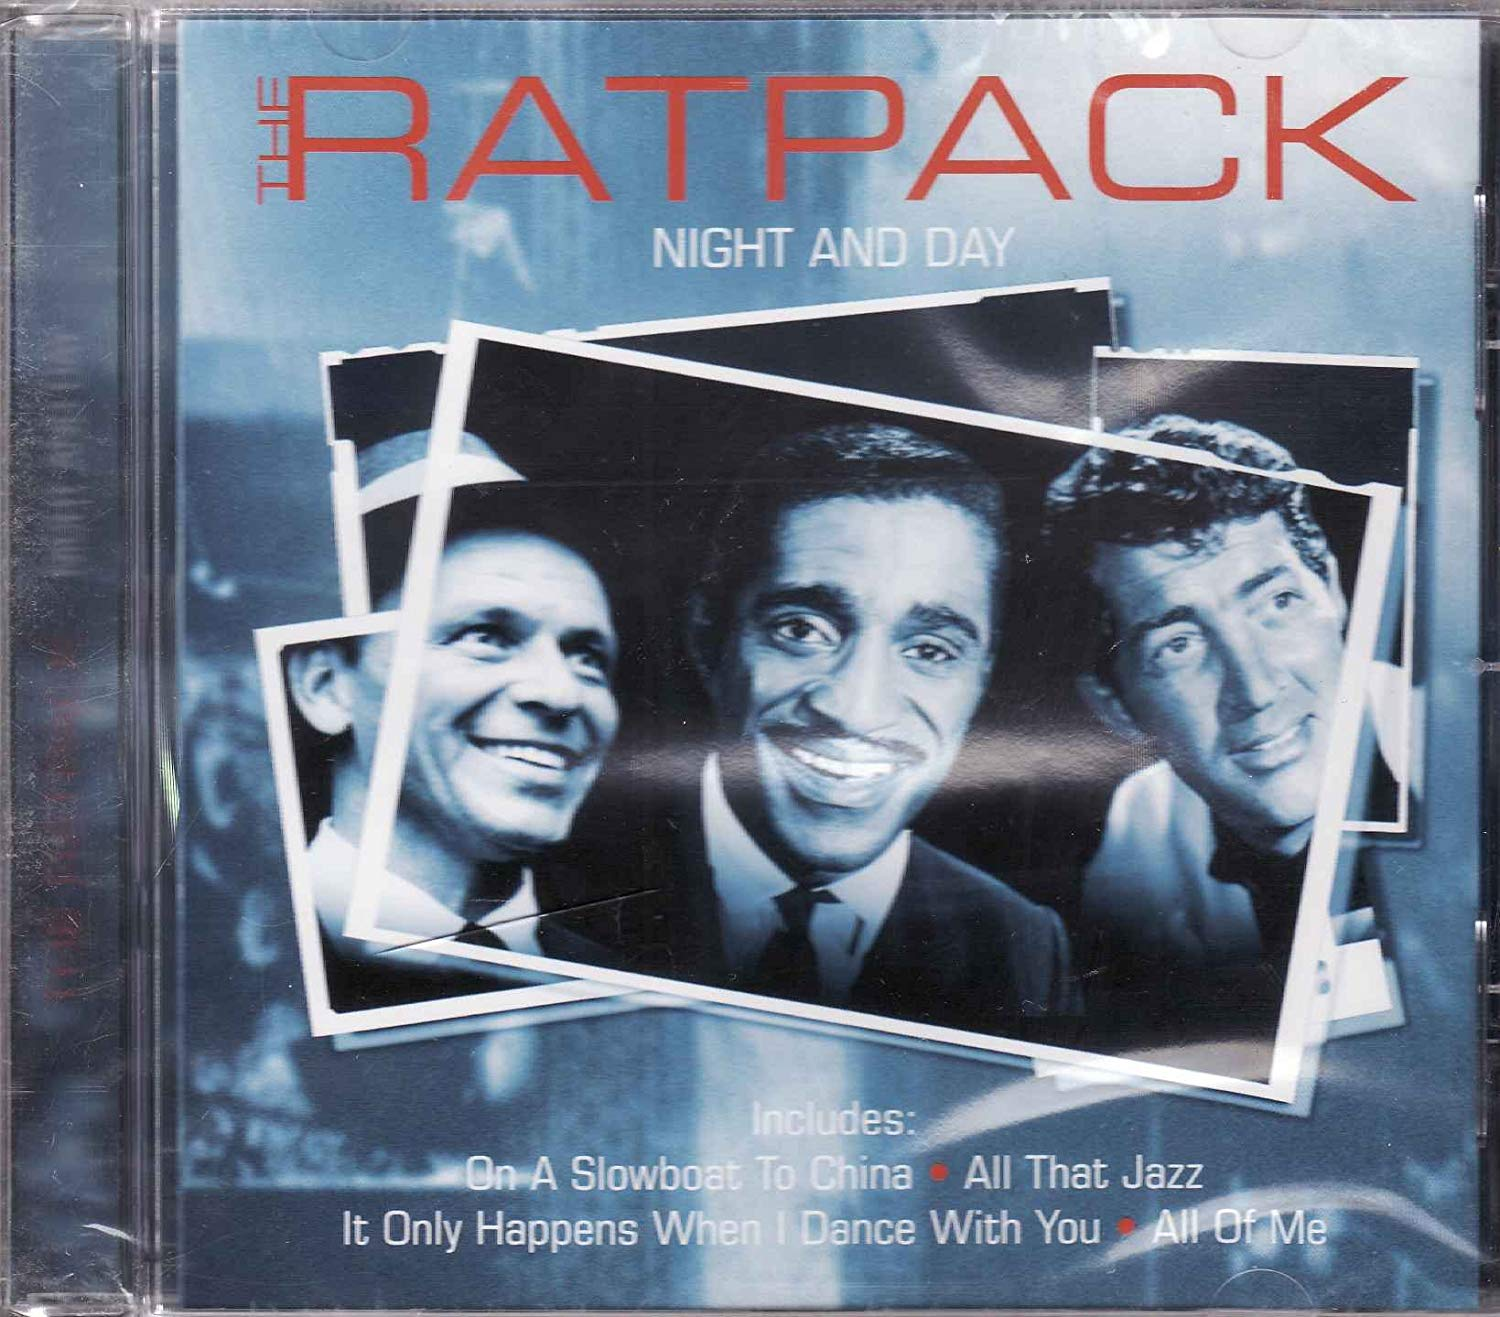 The Ratpack Night And Day